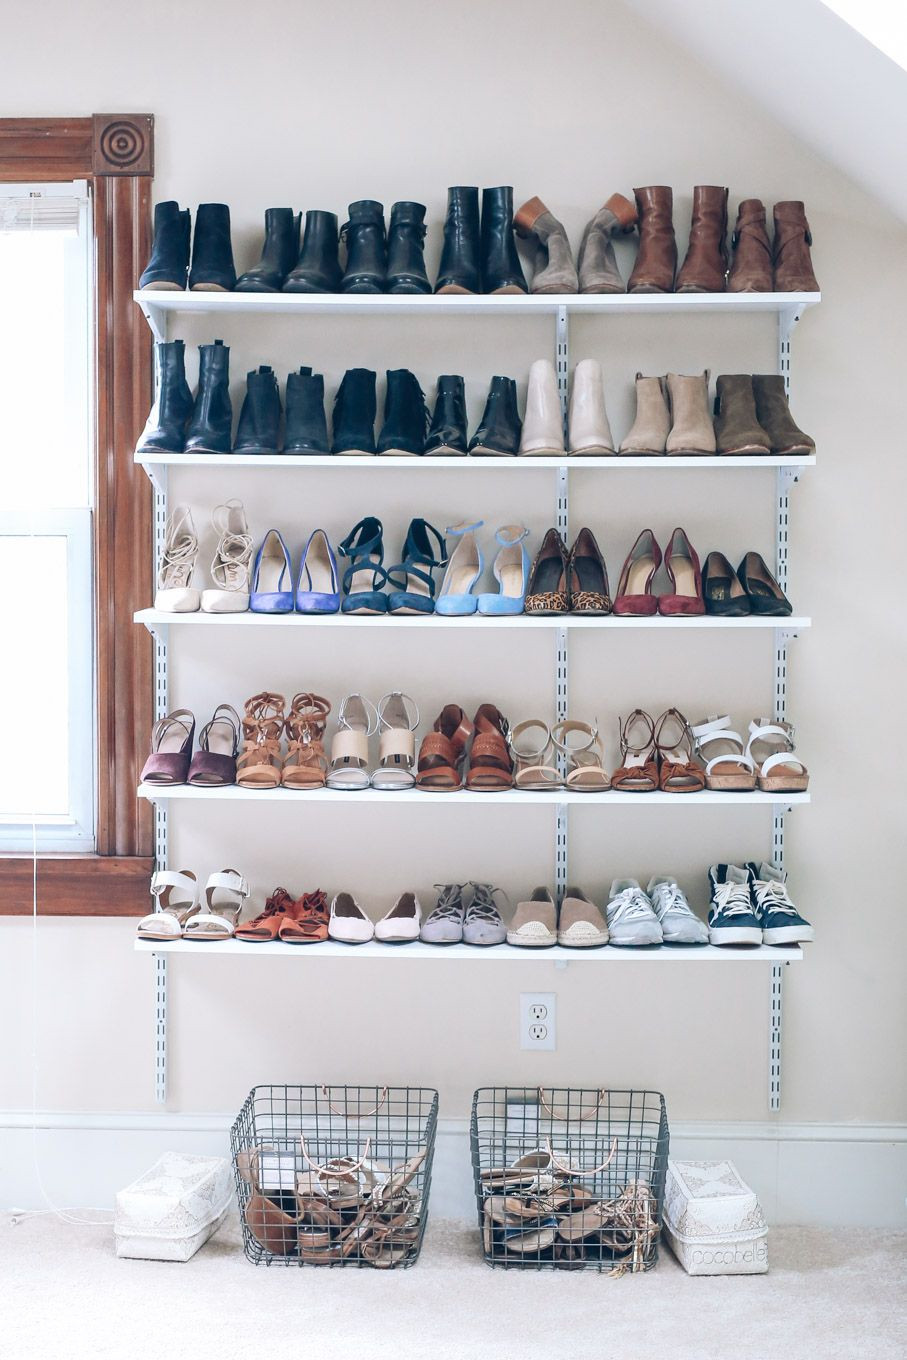 38 Best Simple DIY Shoe Racks You'll Want To Make,shoe rack ideas pinterest,shoe rack ideas diy,shoe storage ideas for small spaces